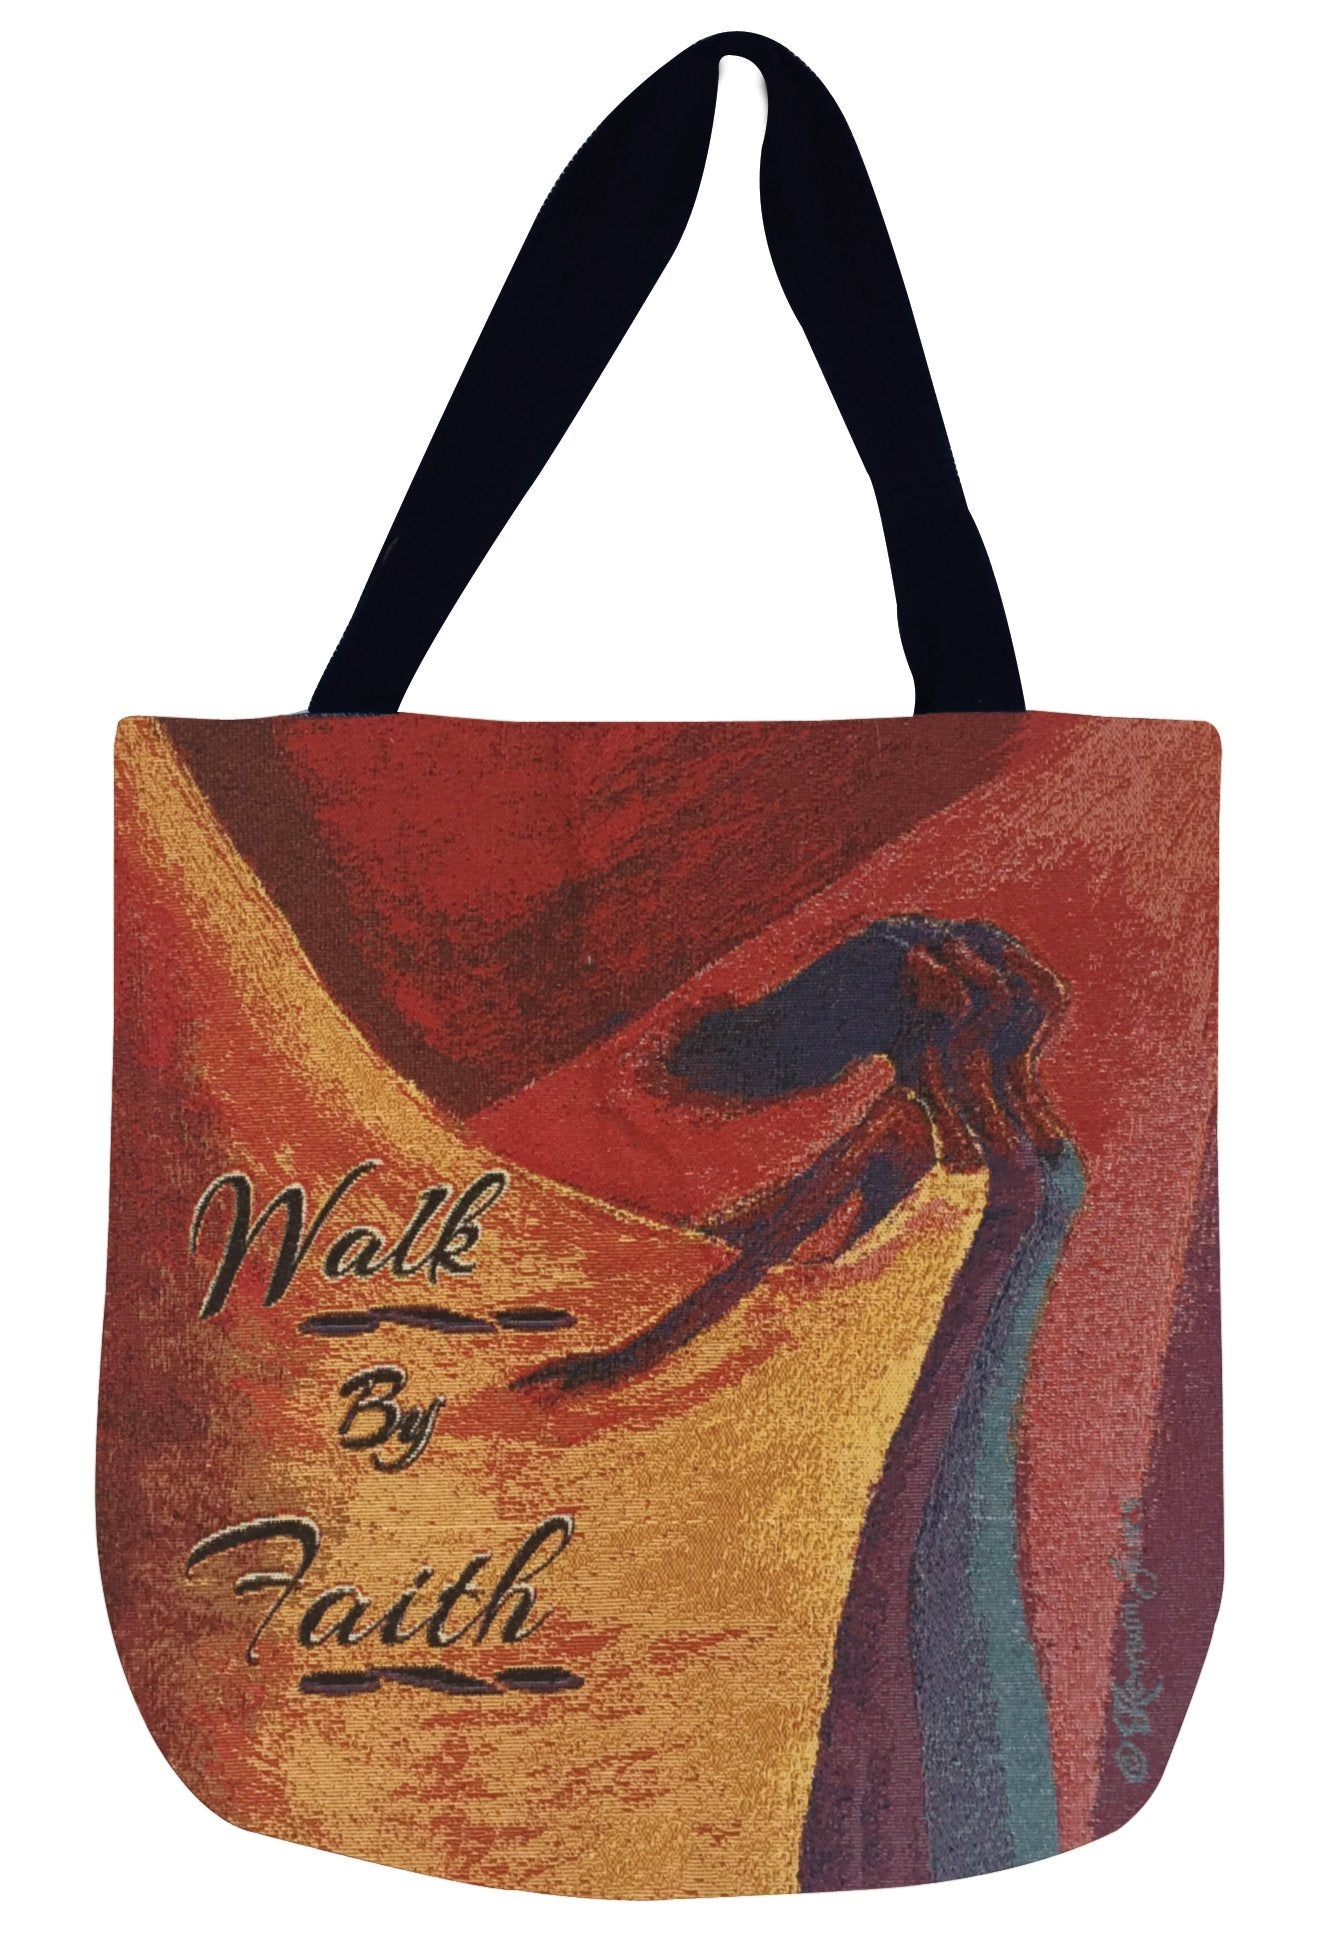 Walk by Faith: African American Woven Tapestry Tote Bag by Kerream Jones